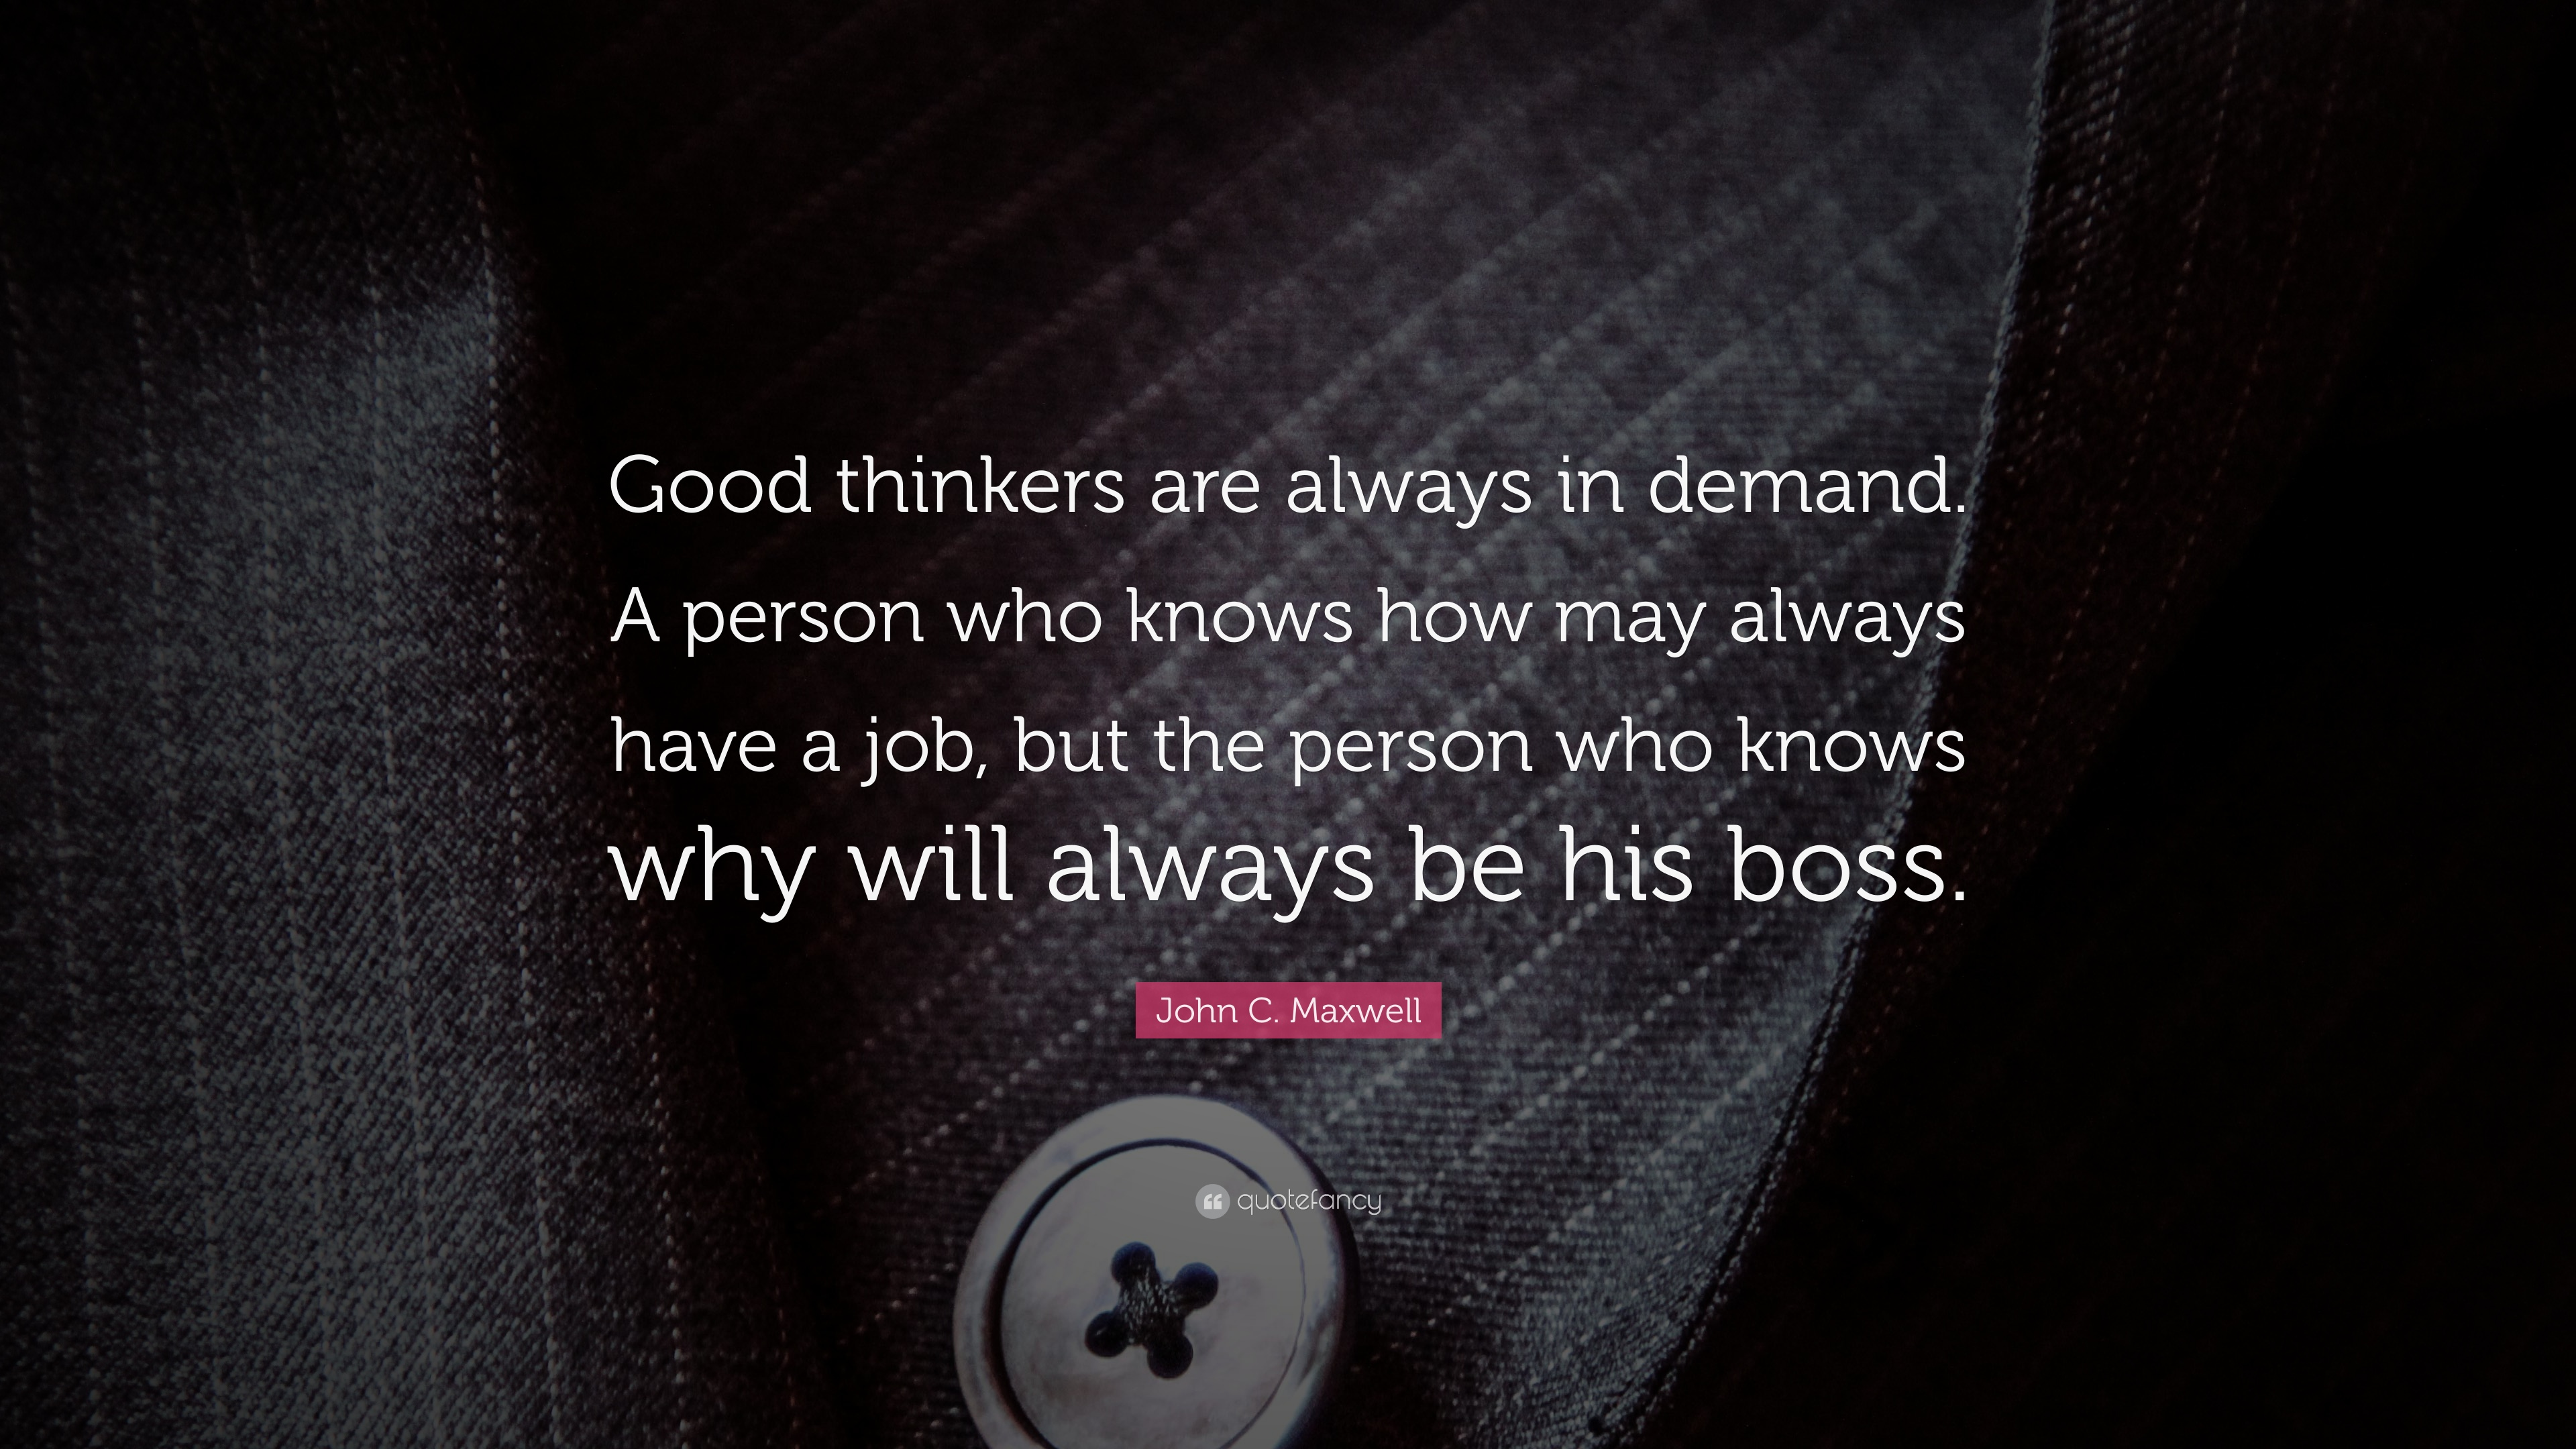 John C Maxwell Quote Good Thinkers Are Always In Demand A Person